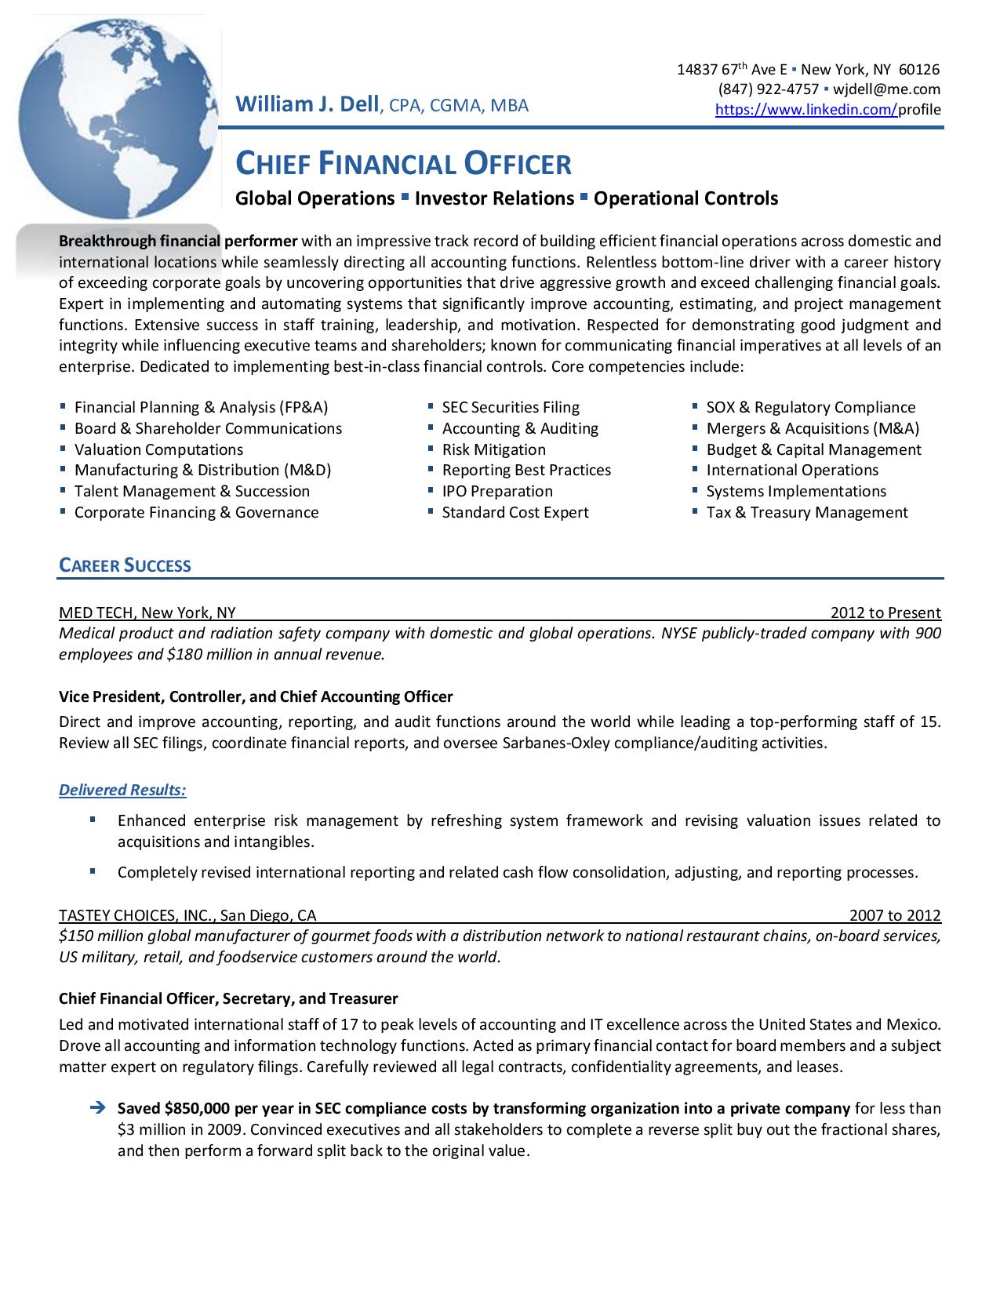 Cfo Global Operations 1 Resume Services Resume Executive Resume